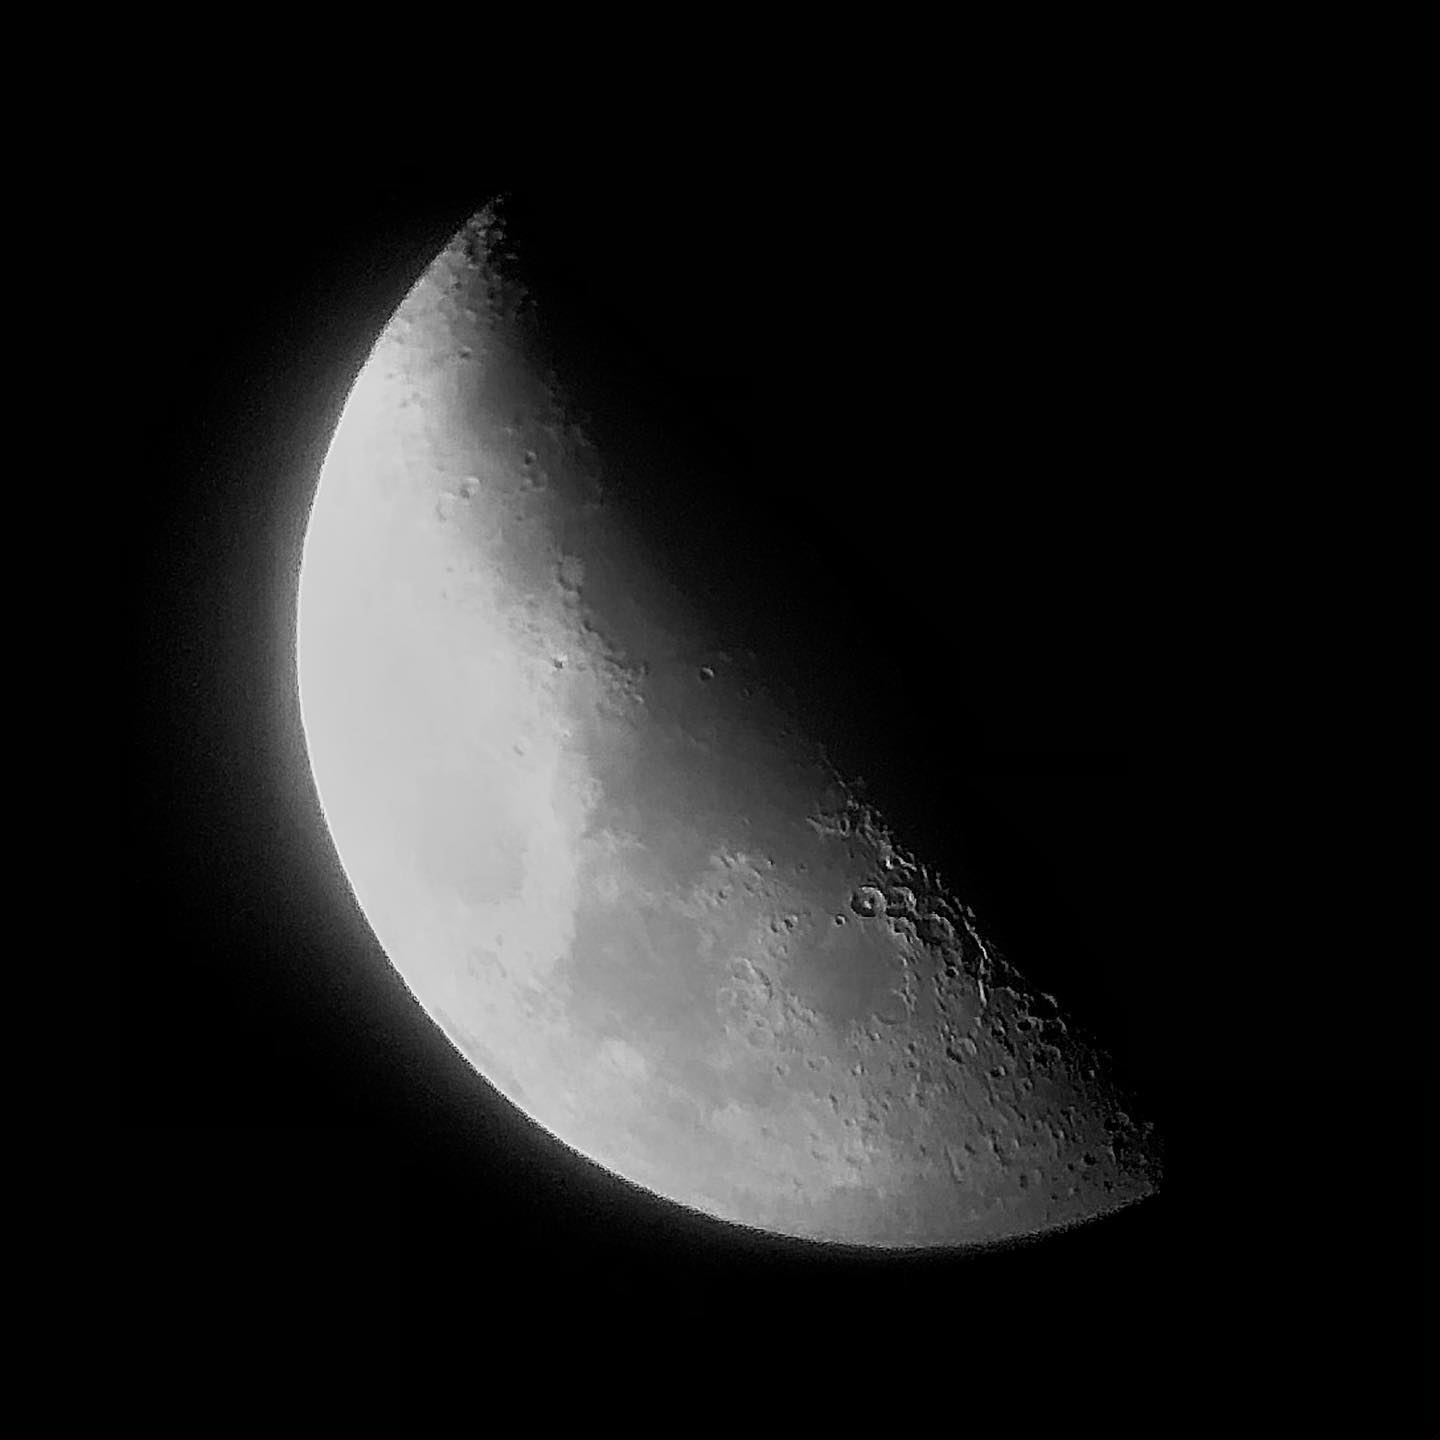 Waxing crescent!